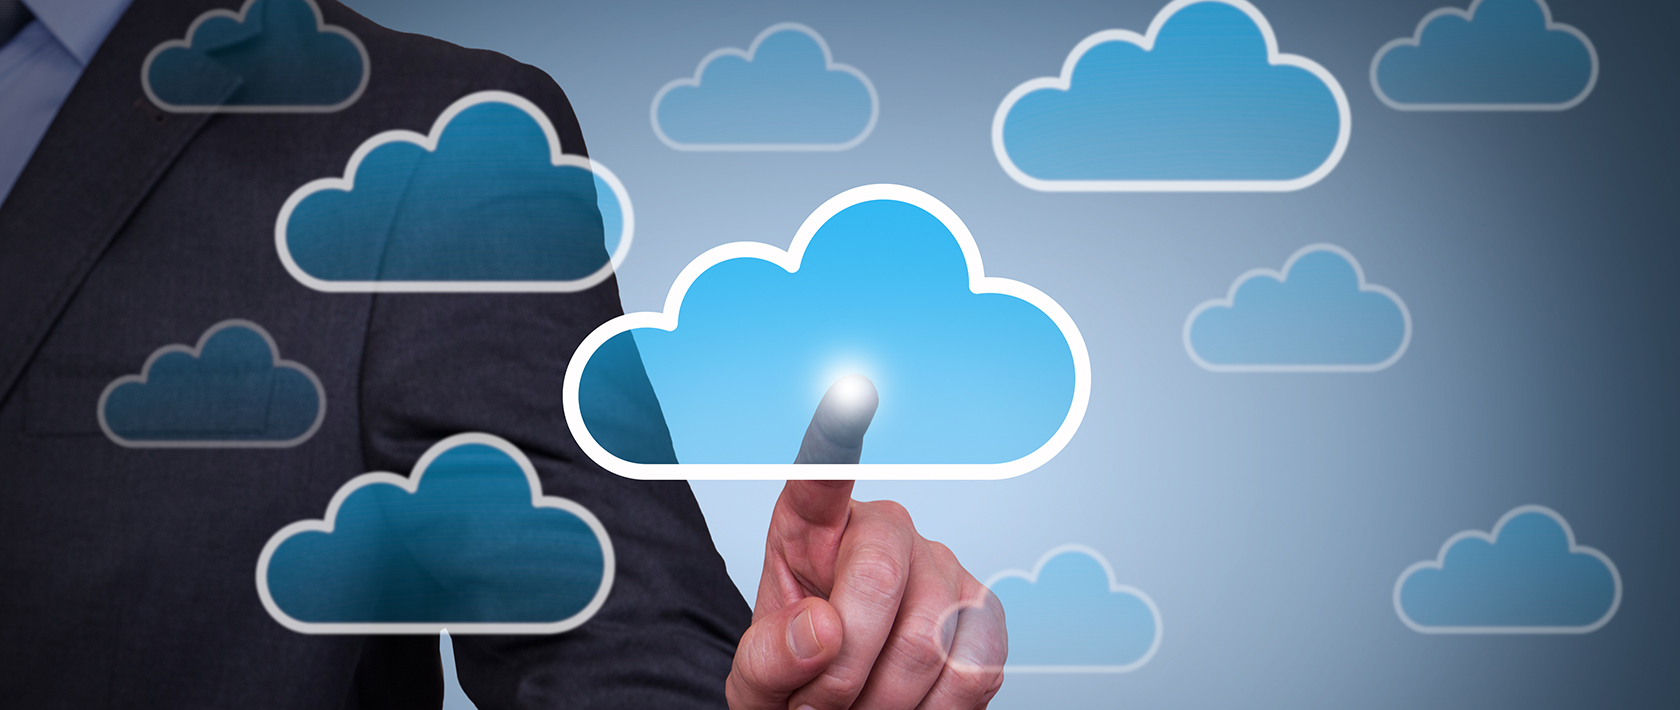 What is Multi-cloud computing?